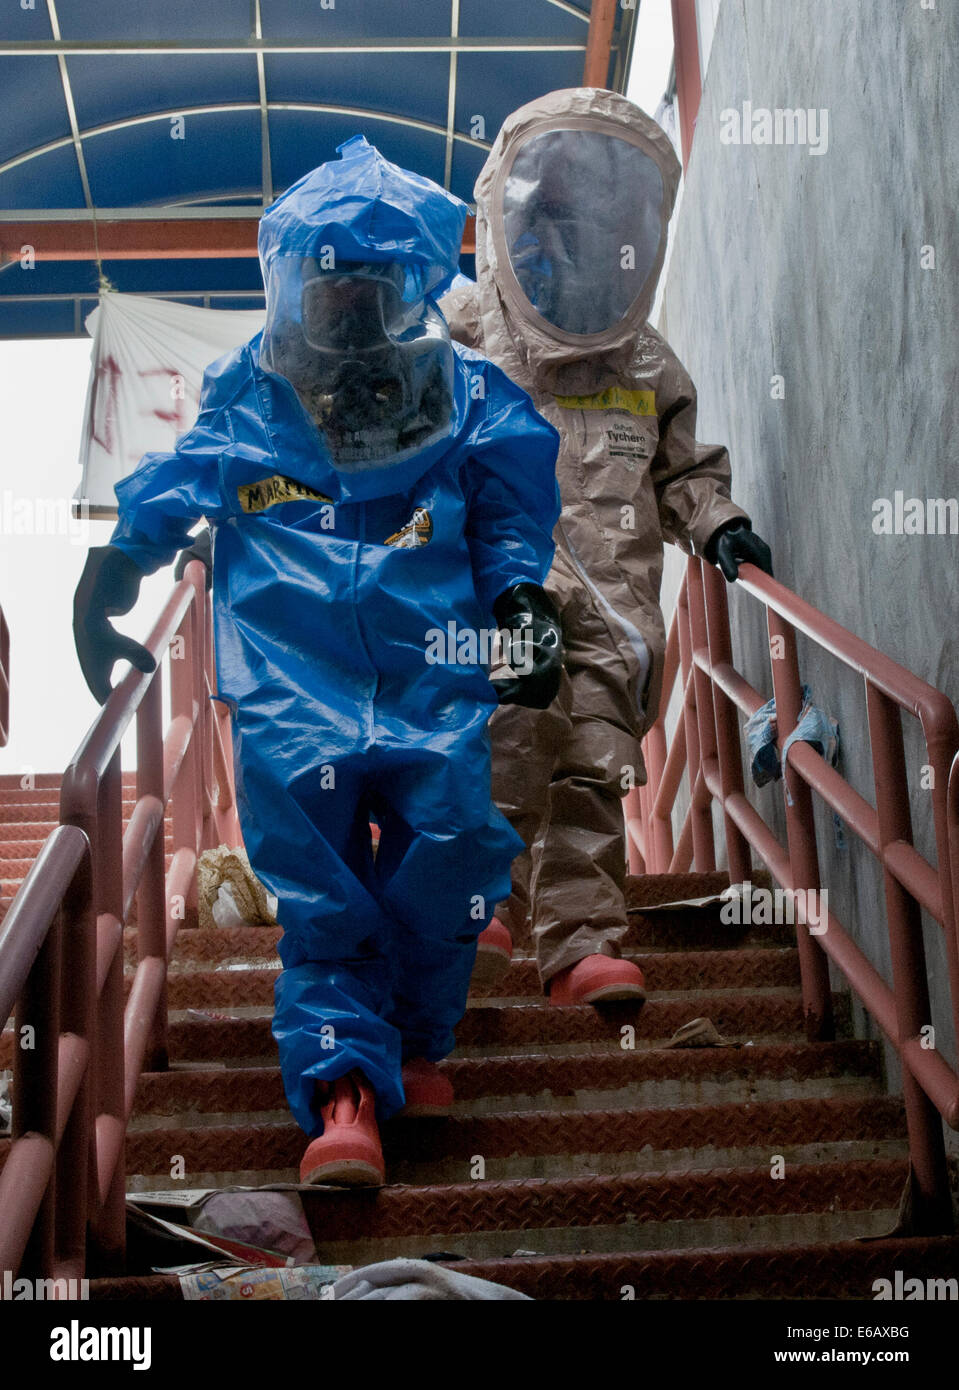 U.S. Army Sgt. Gretchen Martinez, left, and Pvt. Joshua Spearman, both with the 92nd Chemical Company, enter a subway Stock Photo